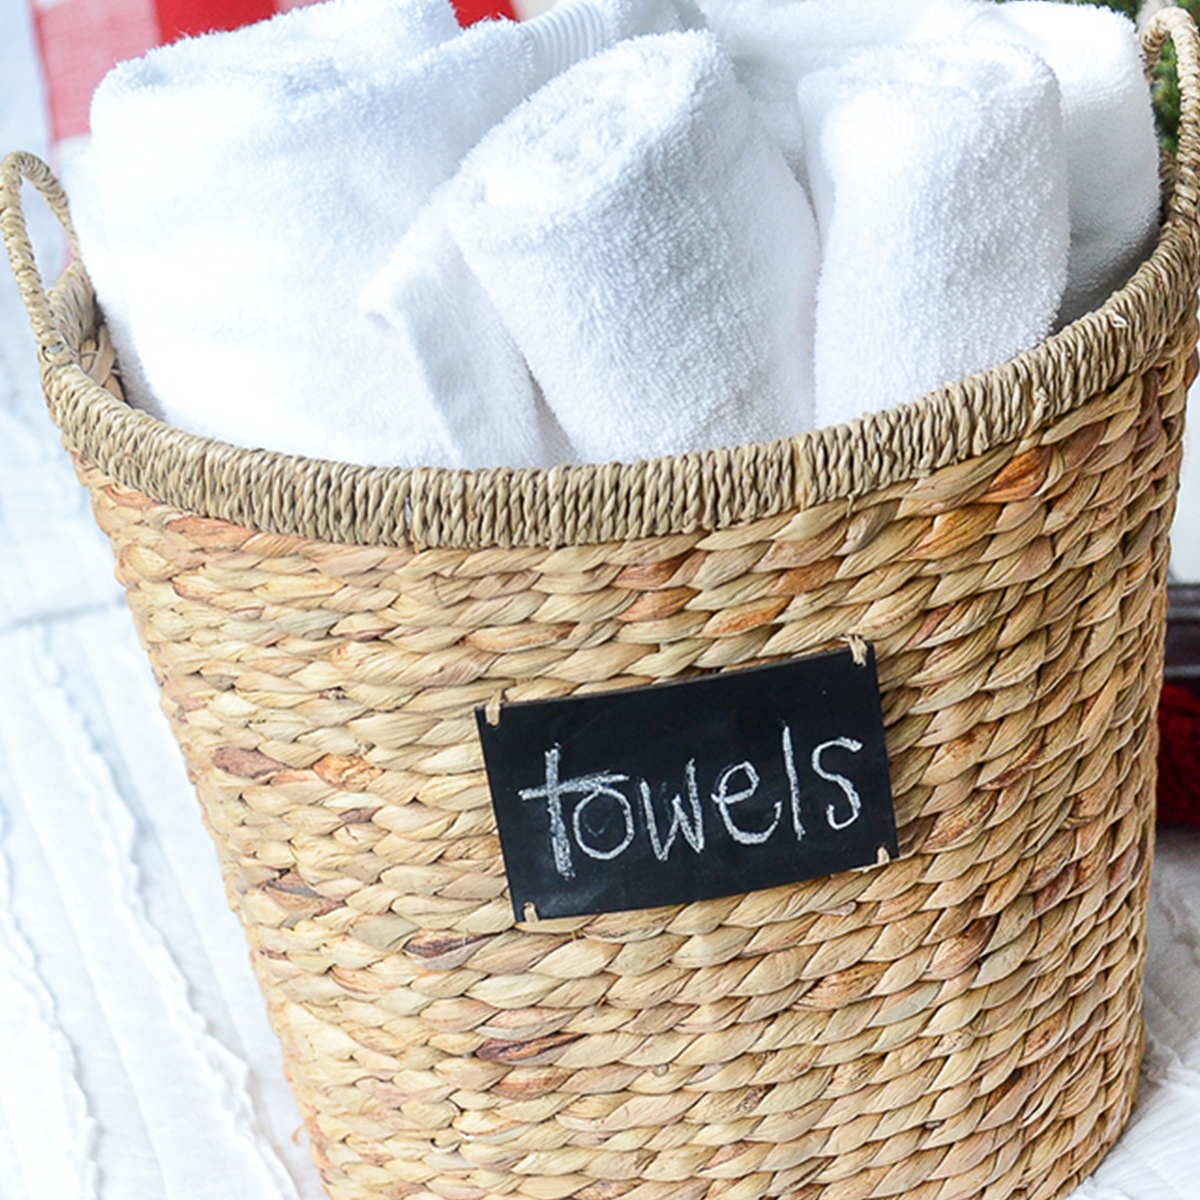 Better Homes & Gardens wicker basket with white bath towels photo